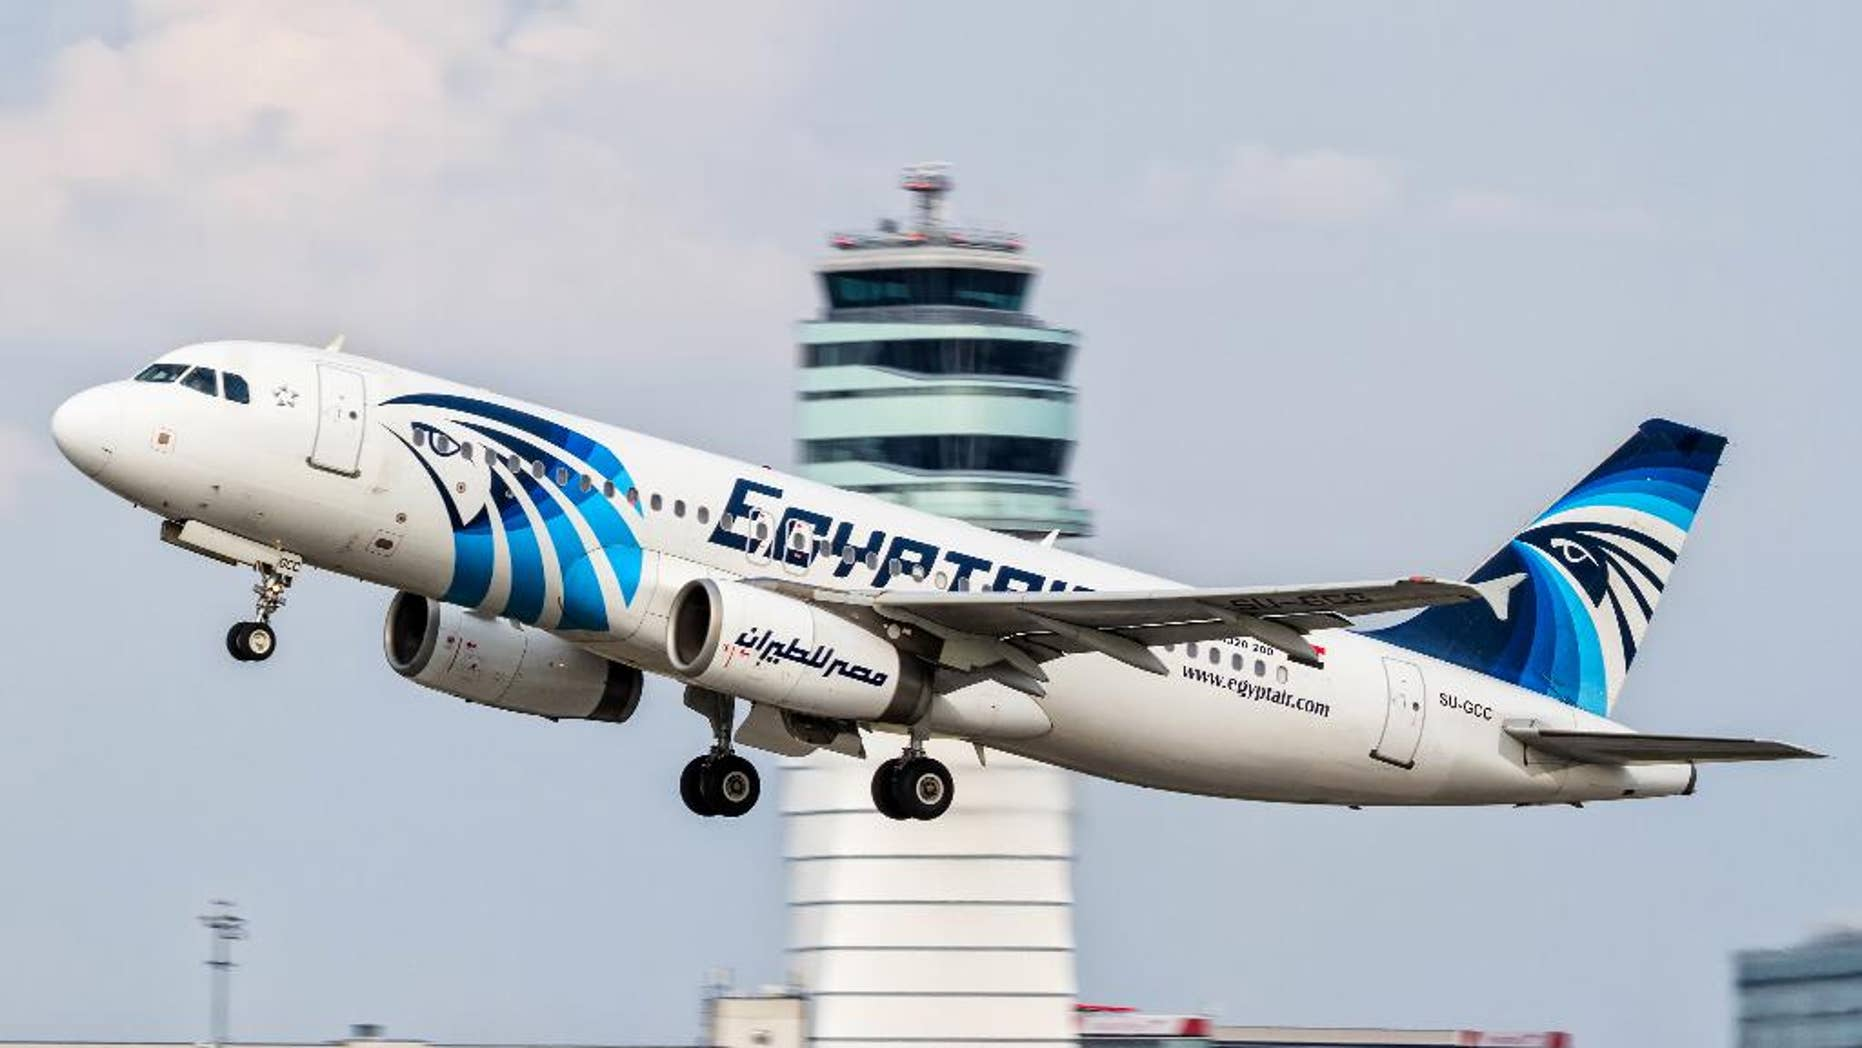 "This August 21, 2015 photo shows an EgyptAir Airbus A320 with the registration SU-GCC taking off from Vienna International Airport, Austria. Egyptian aviation officials said on Thursday May 19, 2016 that an EgyptAir plane with the registration SU-GCC, traveling from Paris to Cairo with 66 passengers and crew on board has crashed off the Greek island of Karpathos. Meanwhile, Egypt's chief prosecutor Nabil Sadek says he has ordered an ""urgent investigation"" into crash. Sadek instructed the National Security Prosecutor to open an ""extensive investigation"" in the incident. (AP Photo/Thomas Ranner)"